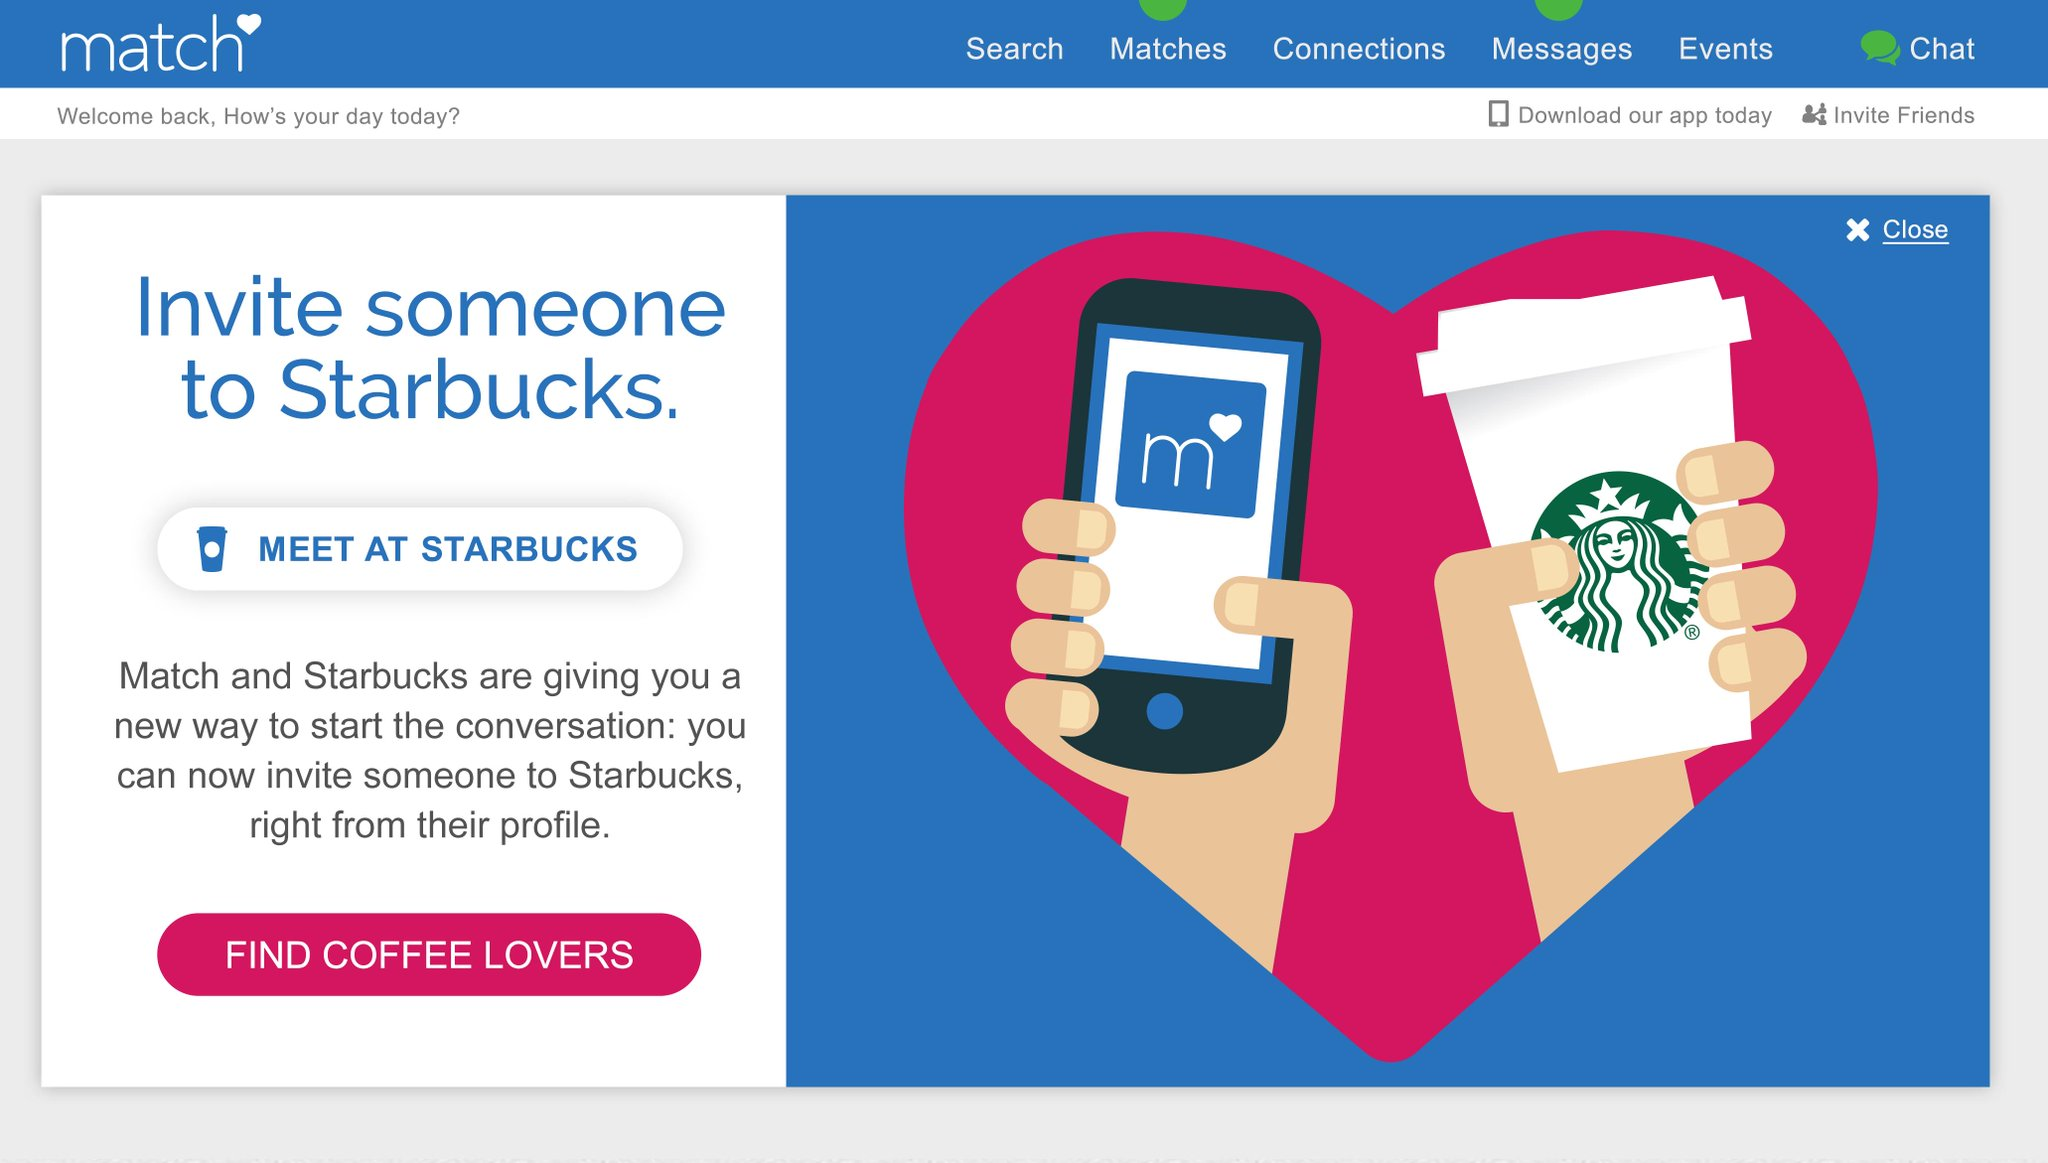 Starbucks, Match want you to have your first date at Starbucks http://t.co/7d0c9MNVbD http://t.co/ChkZHuxX8X